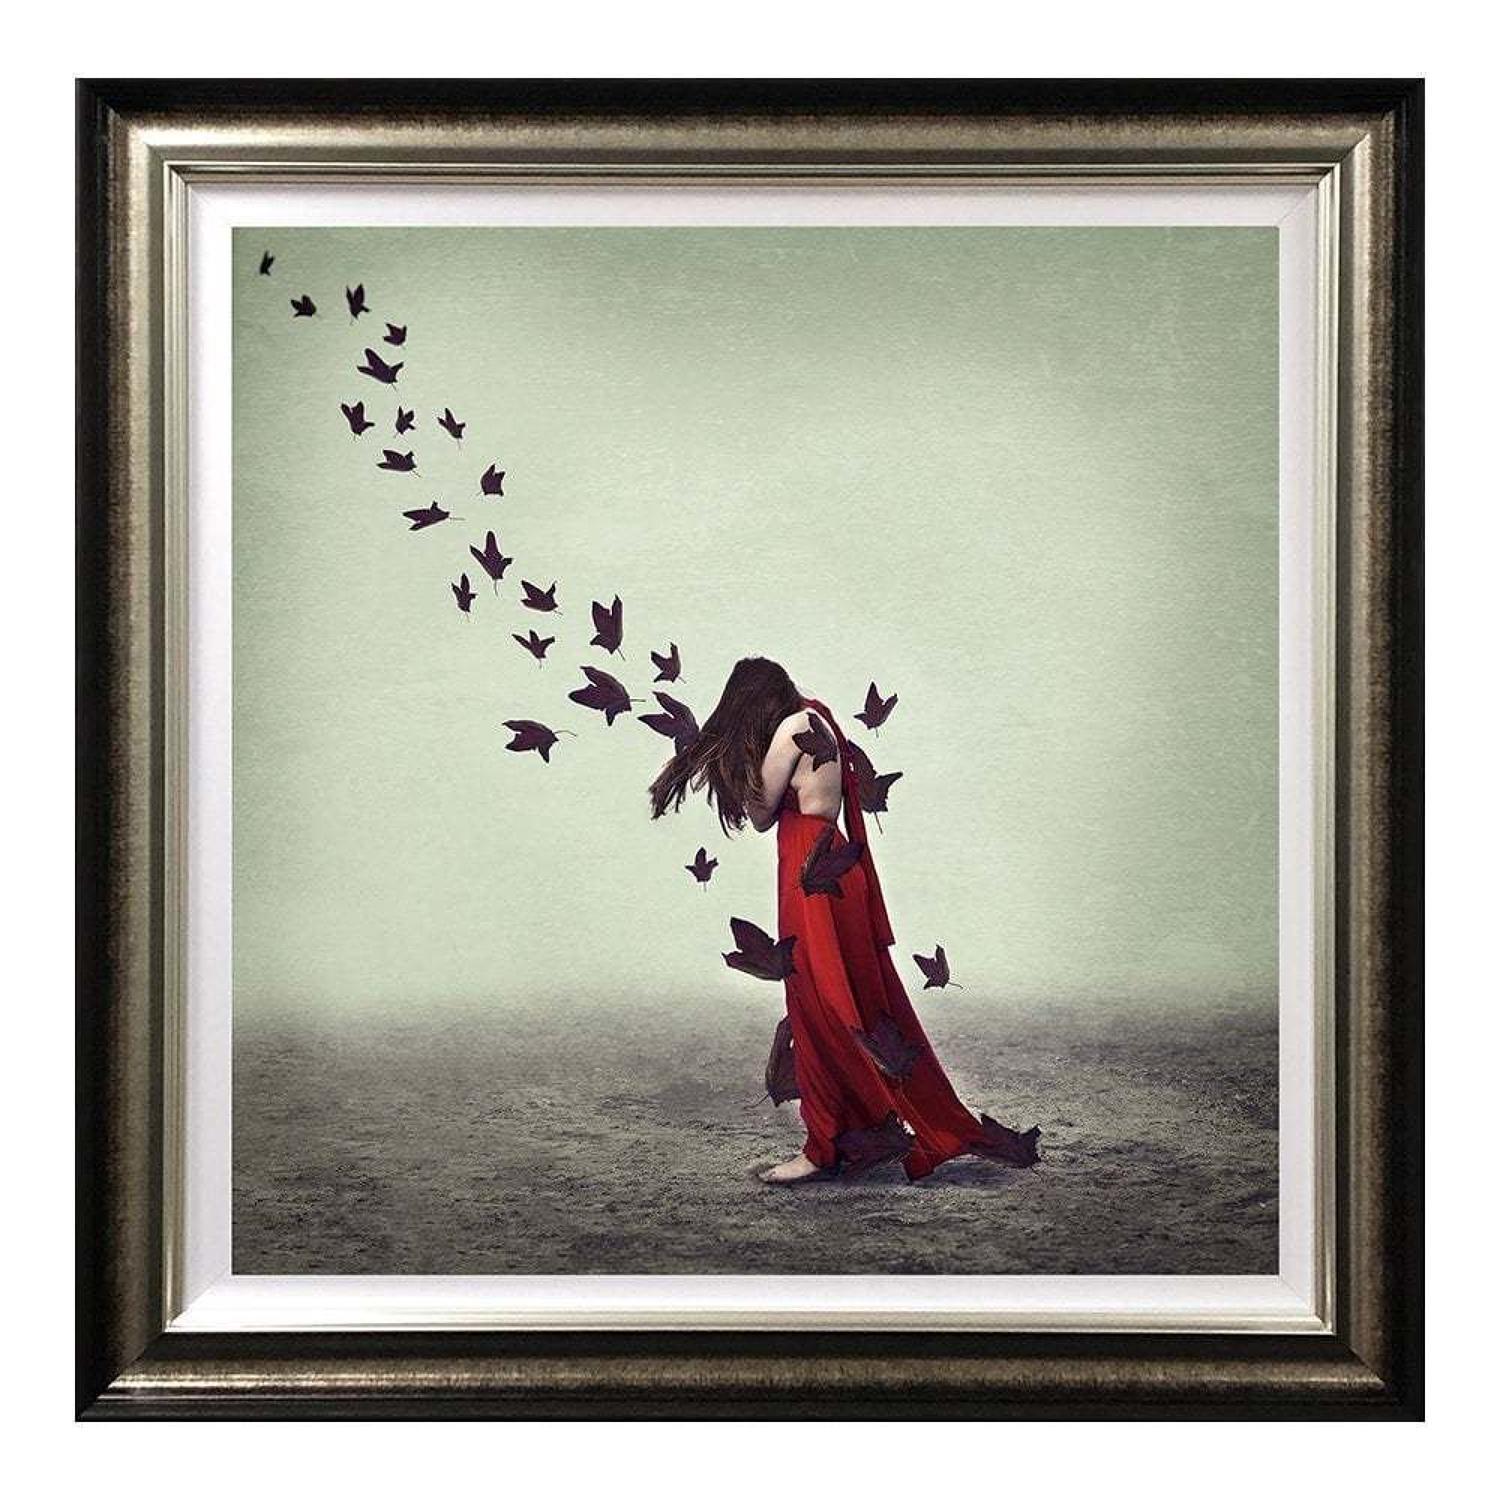 Release - Framed Art Print  by Michelle Mackie